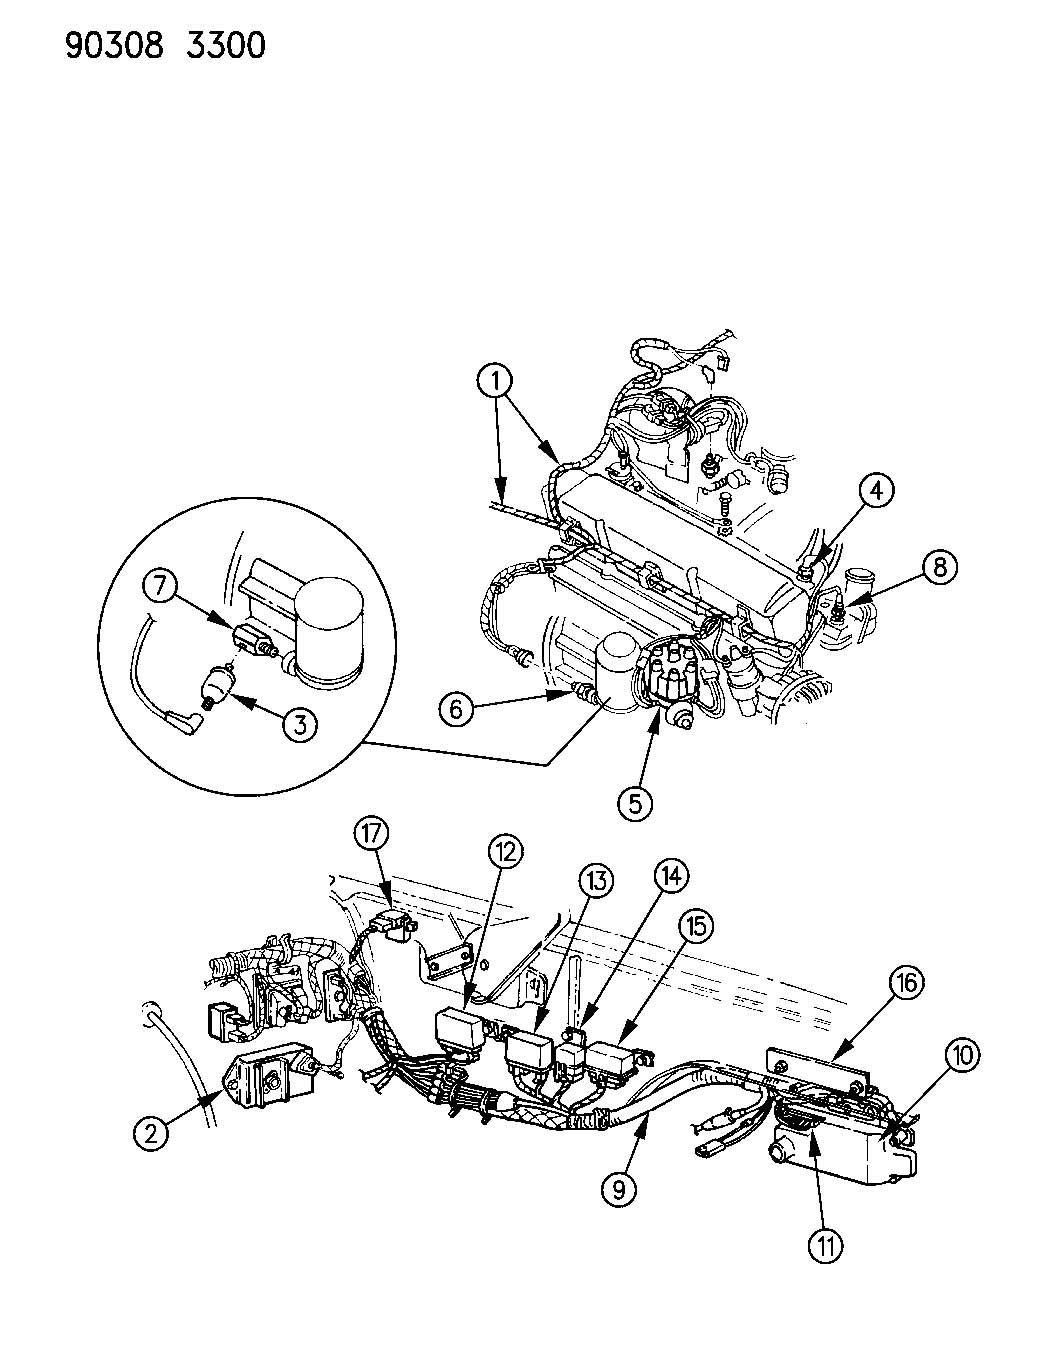 92 chrysler lebaron engine diagram  92  free engine image